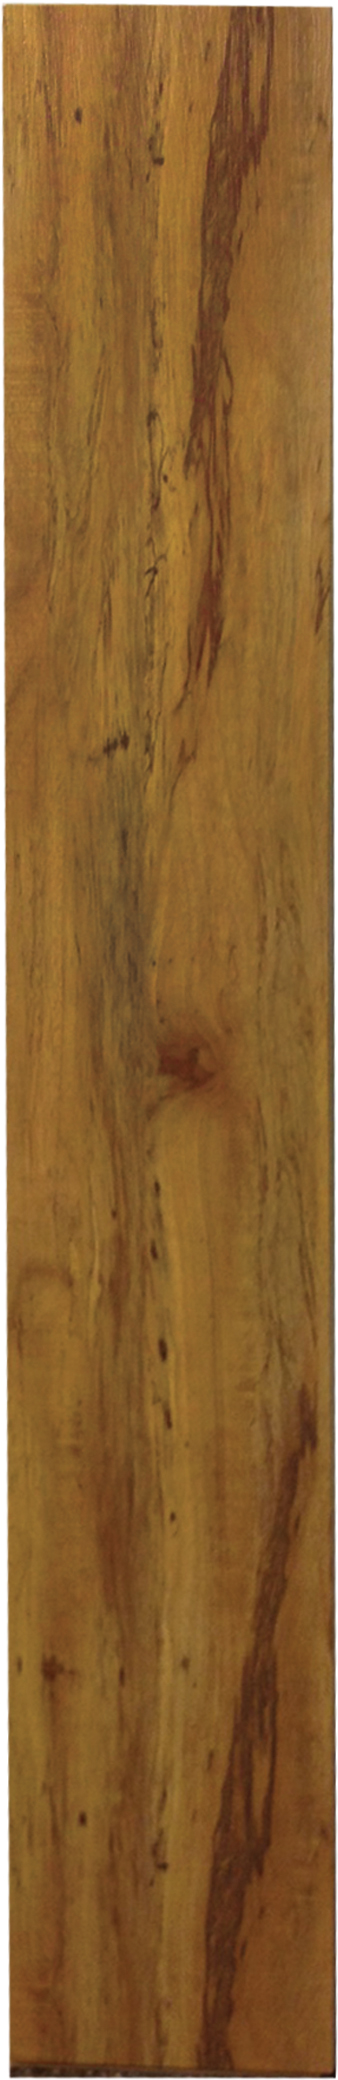 Cloud Walk Laminate Floor Planks 4pcs